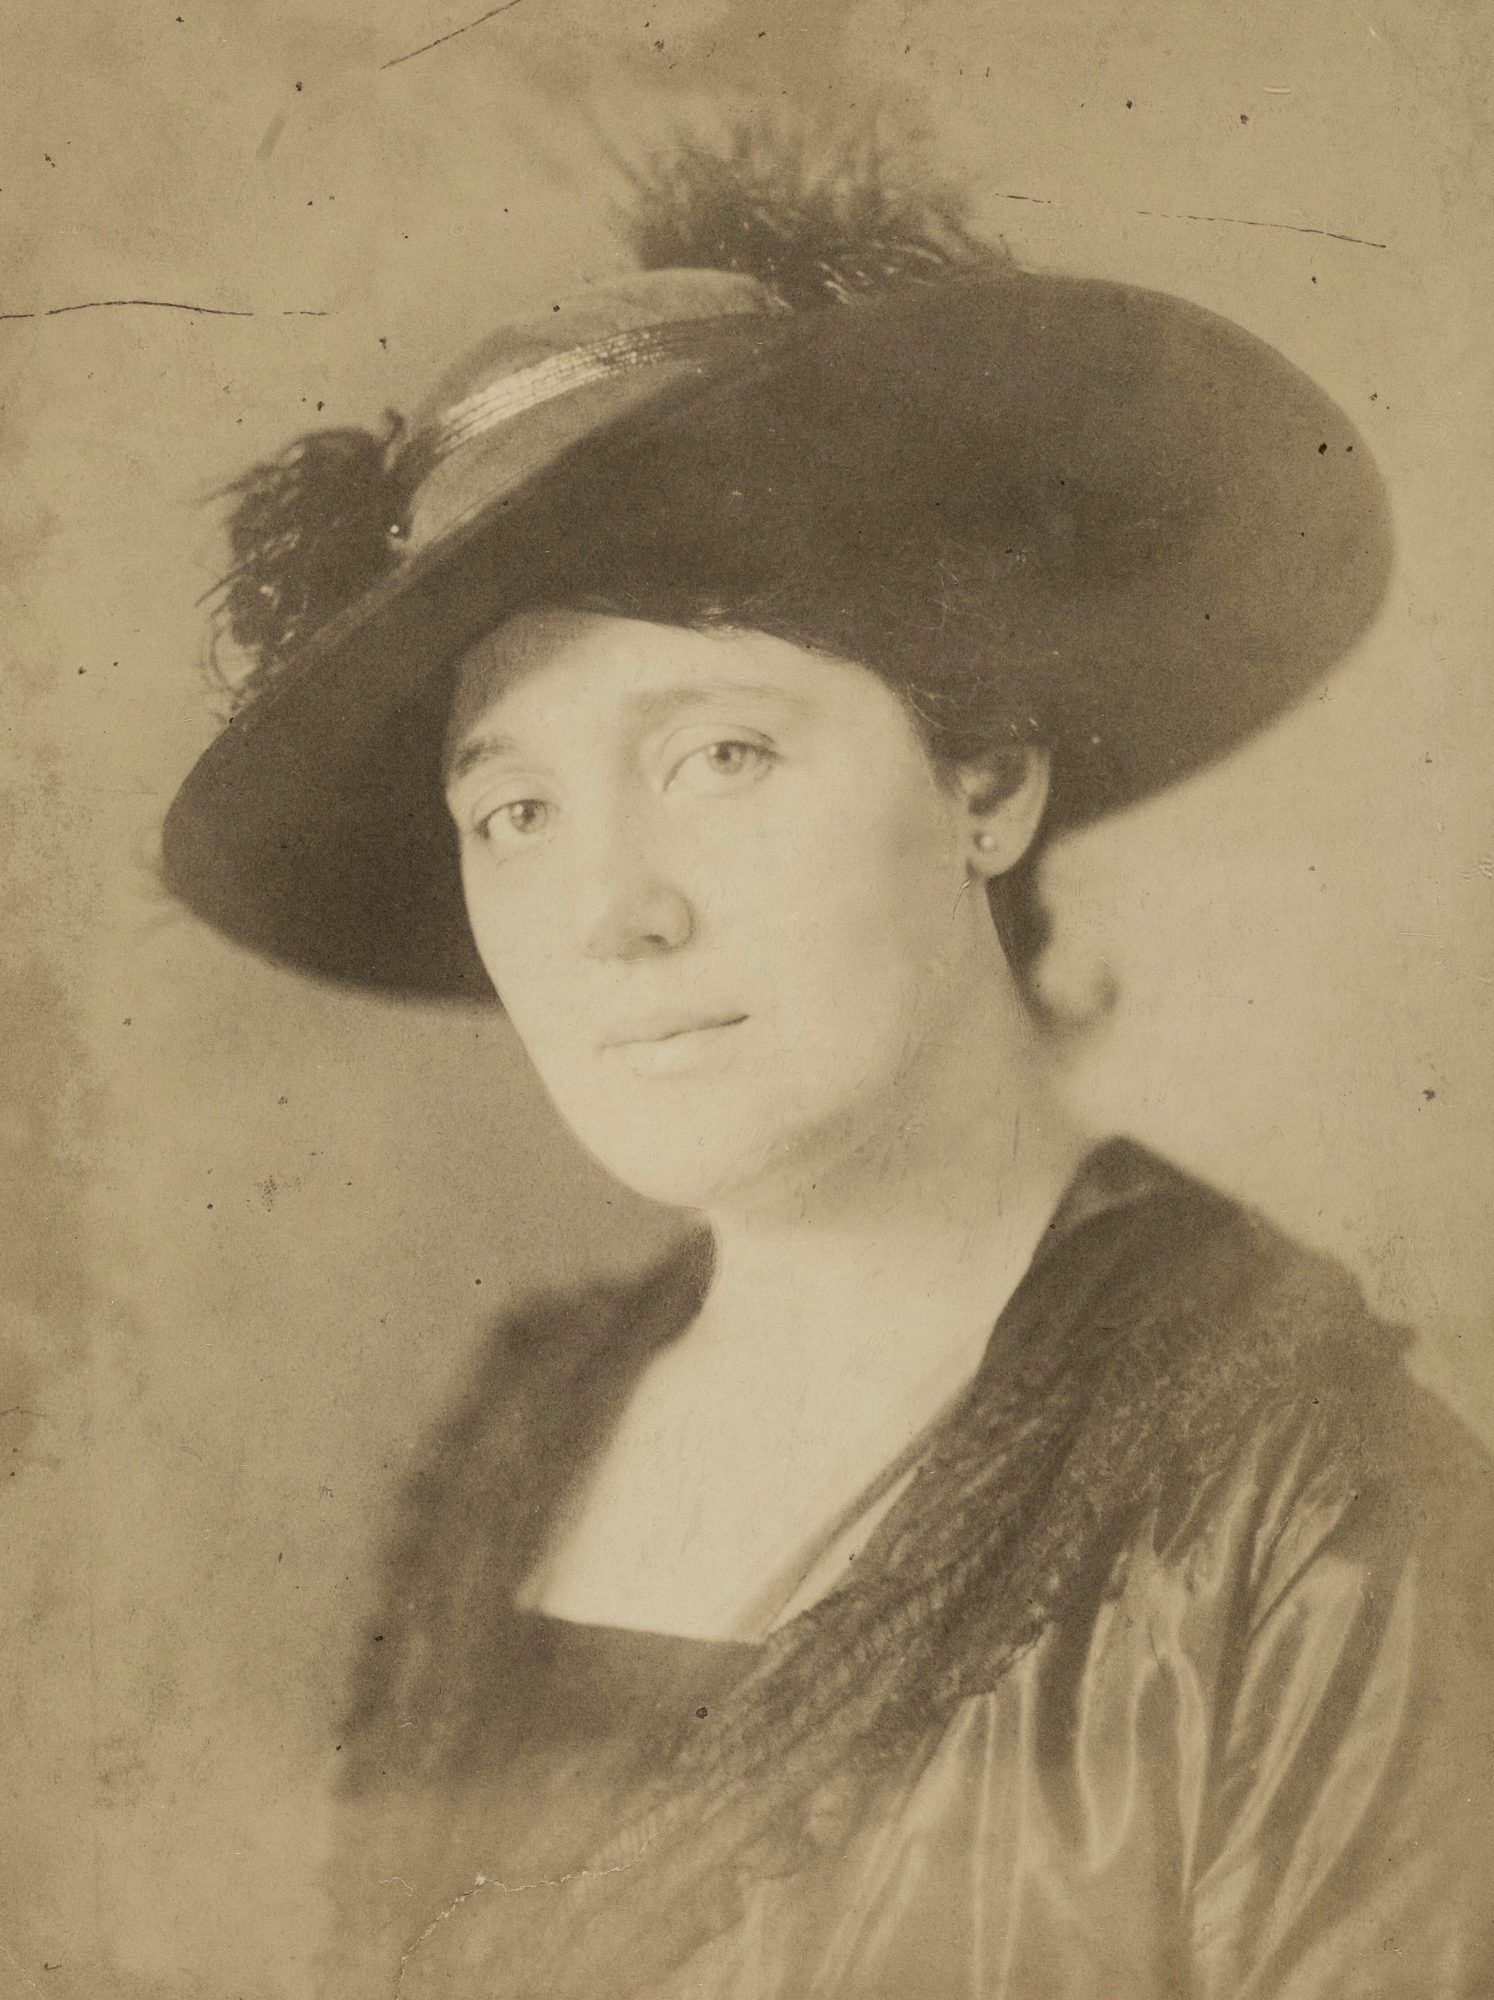 Photograph of Melanie Klein in about 1912